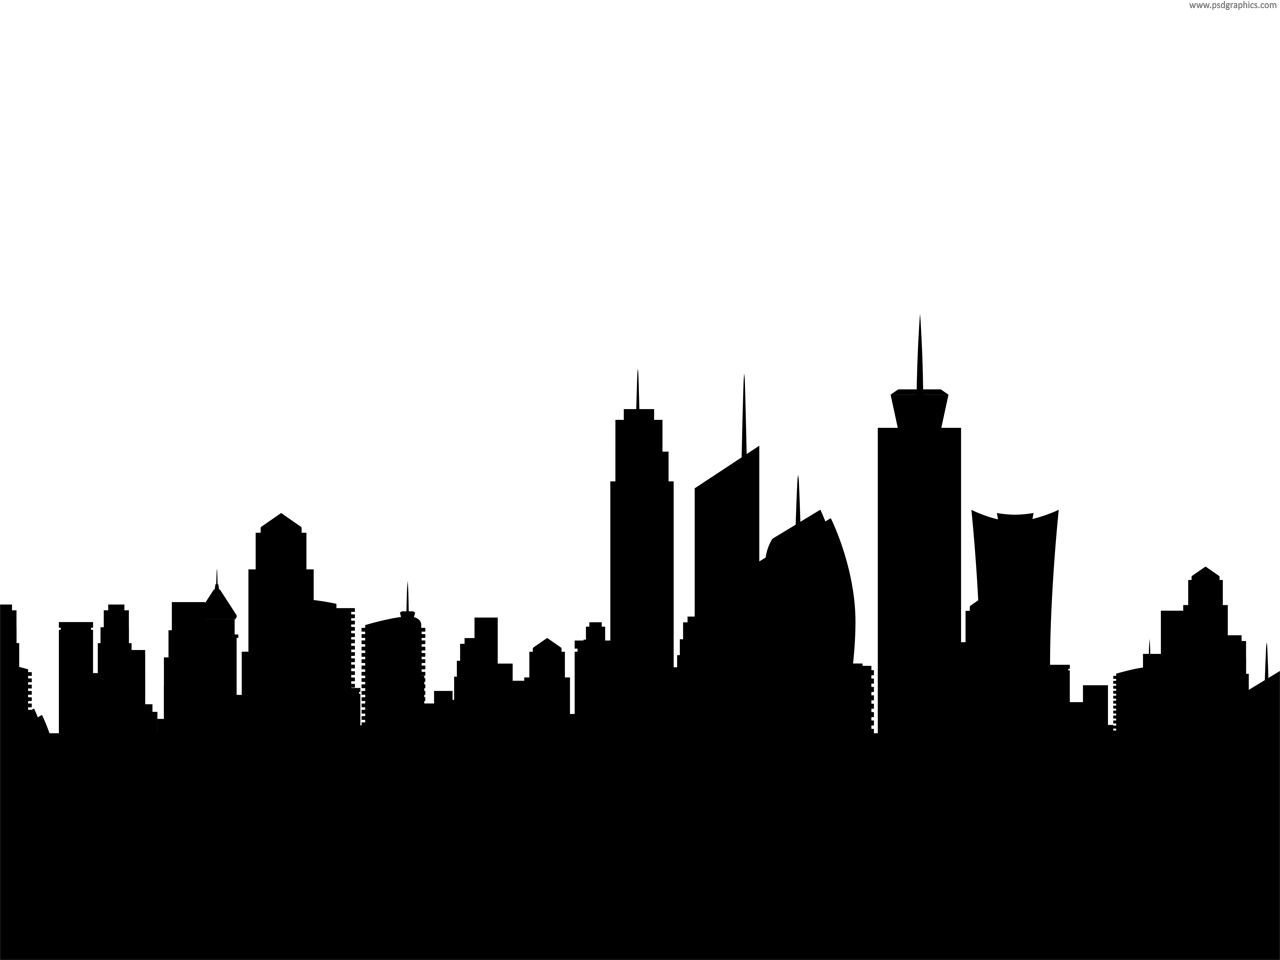 City Skyline Silhouette Psdgraphics